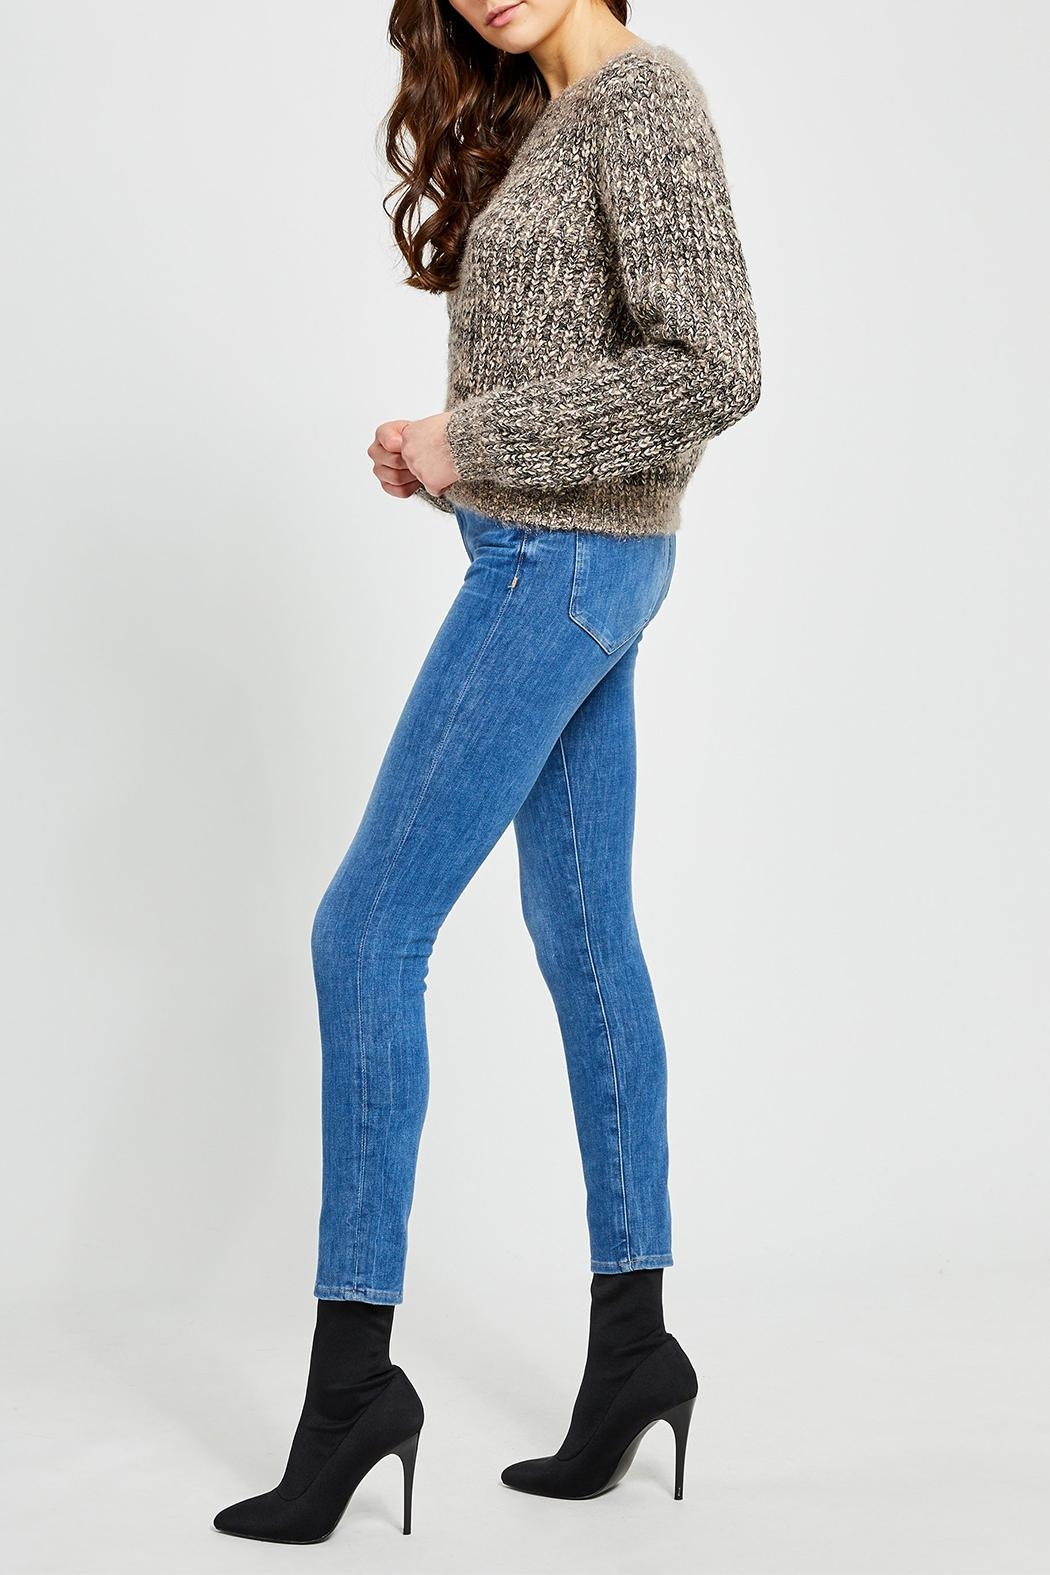 Gentle Fawn Bellatrix Sweater - Front Full Image